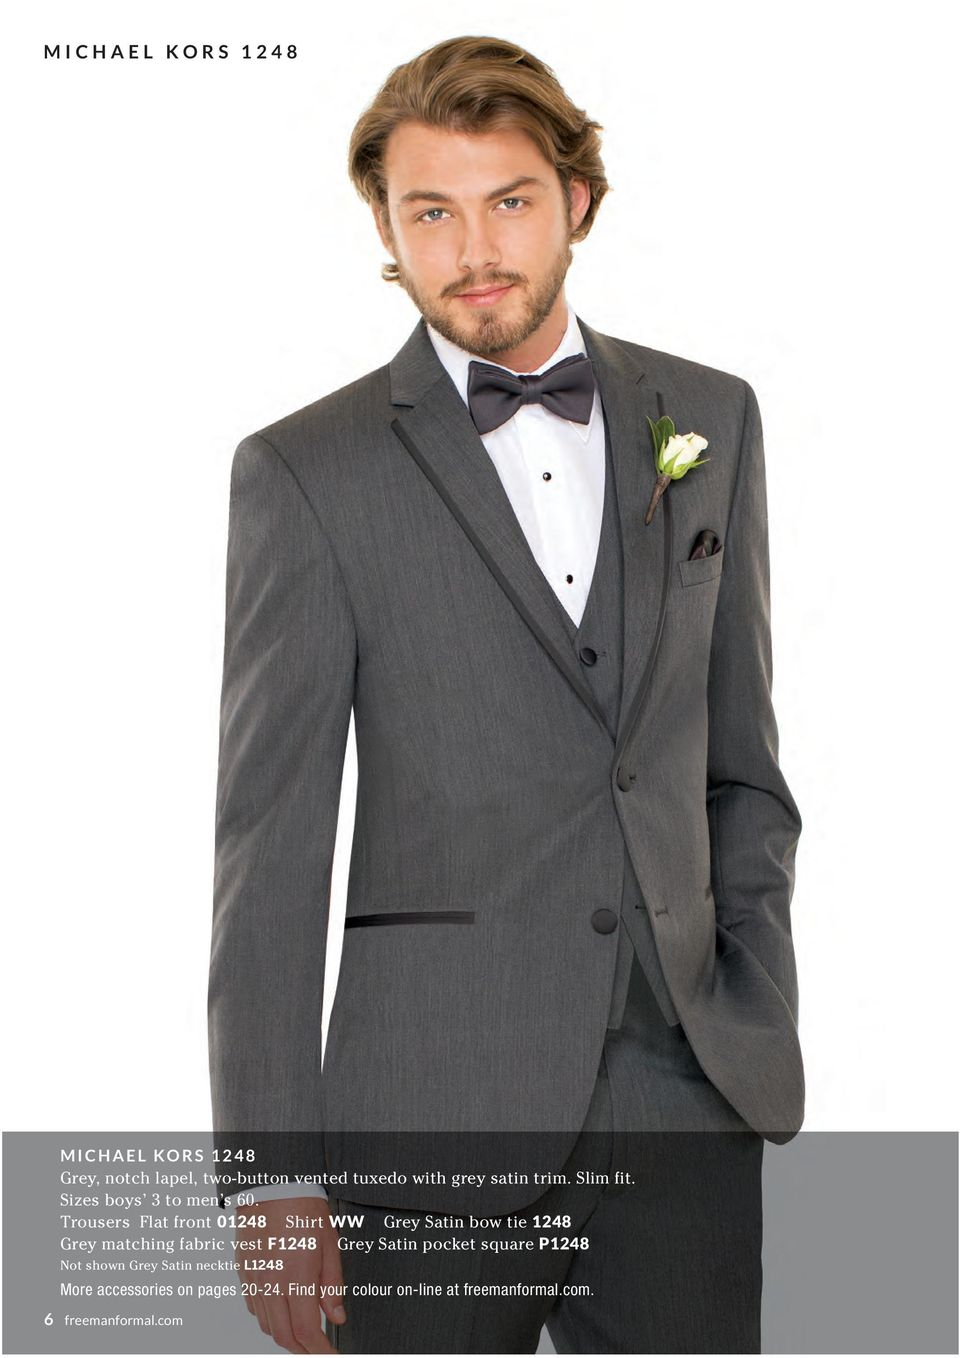 Trousers Flat front 01248 Shirt WW Grey Satin bow tie 1248 Grey matching fabric vest